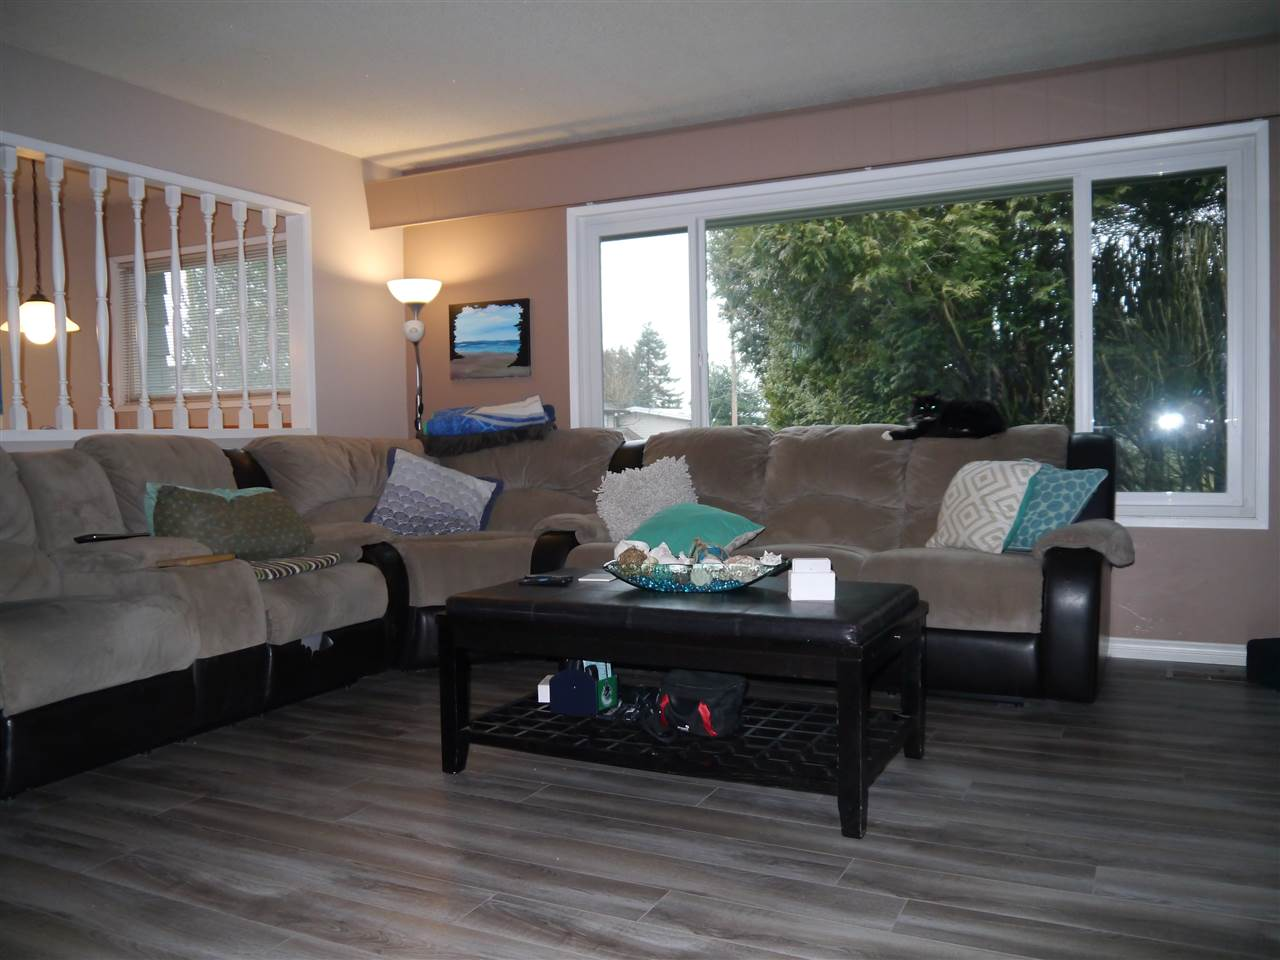 Photo 4: Photos: 2120 CHATEAU Place in Abbotsford: Abbotsford West House for sale : MLS® # R2235242